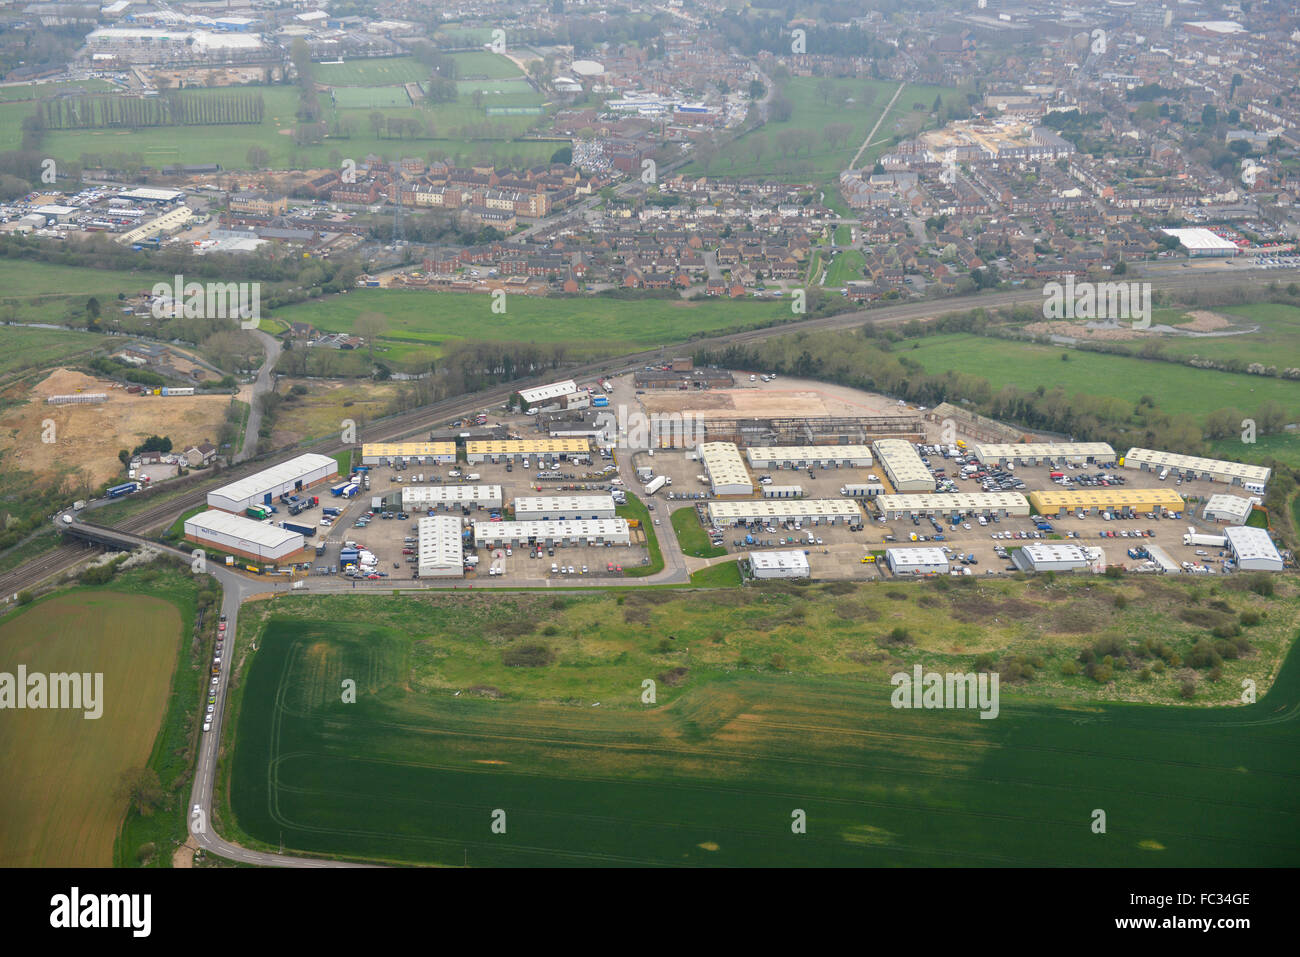 An aerial view of the Leyland trading estate in Wellingborough, Northamptonshire - Stock Image